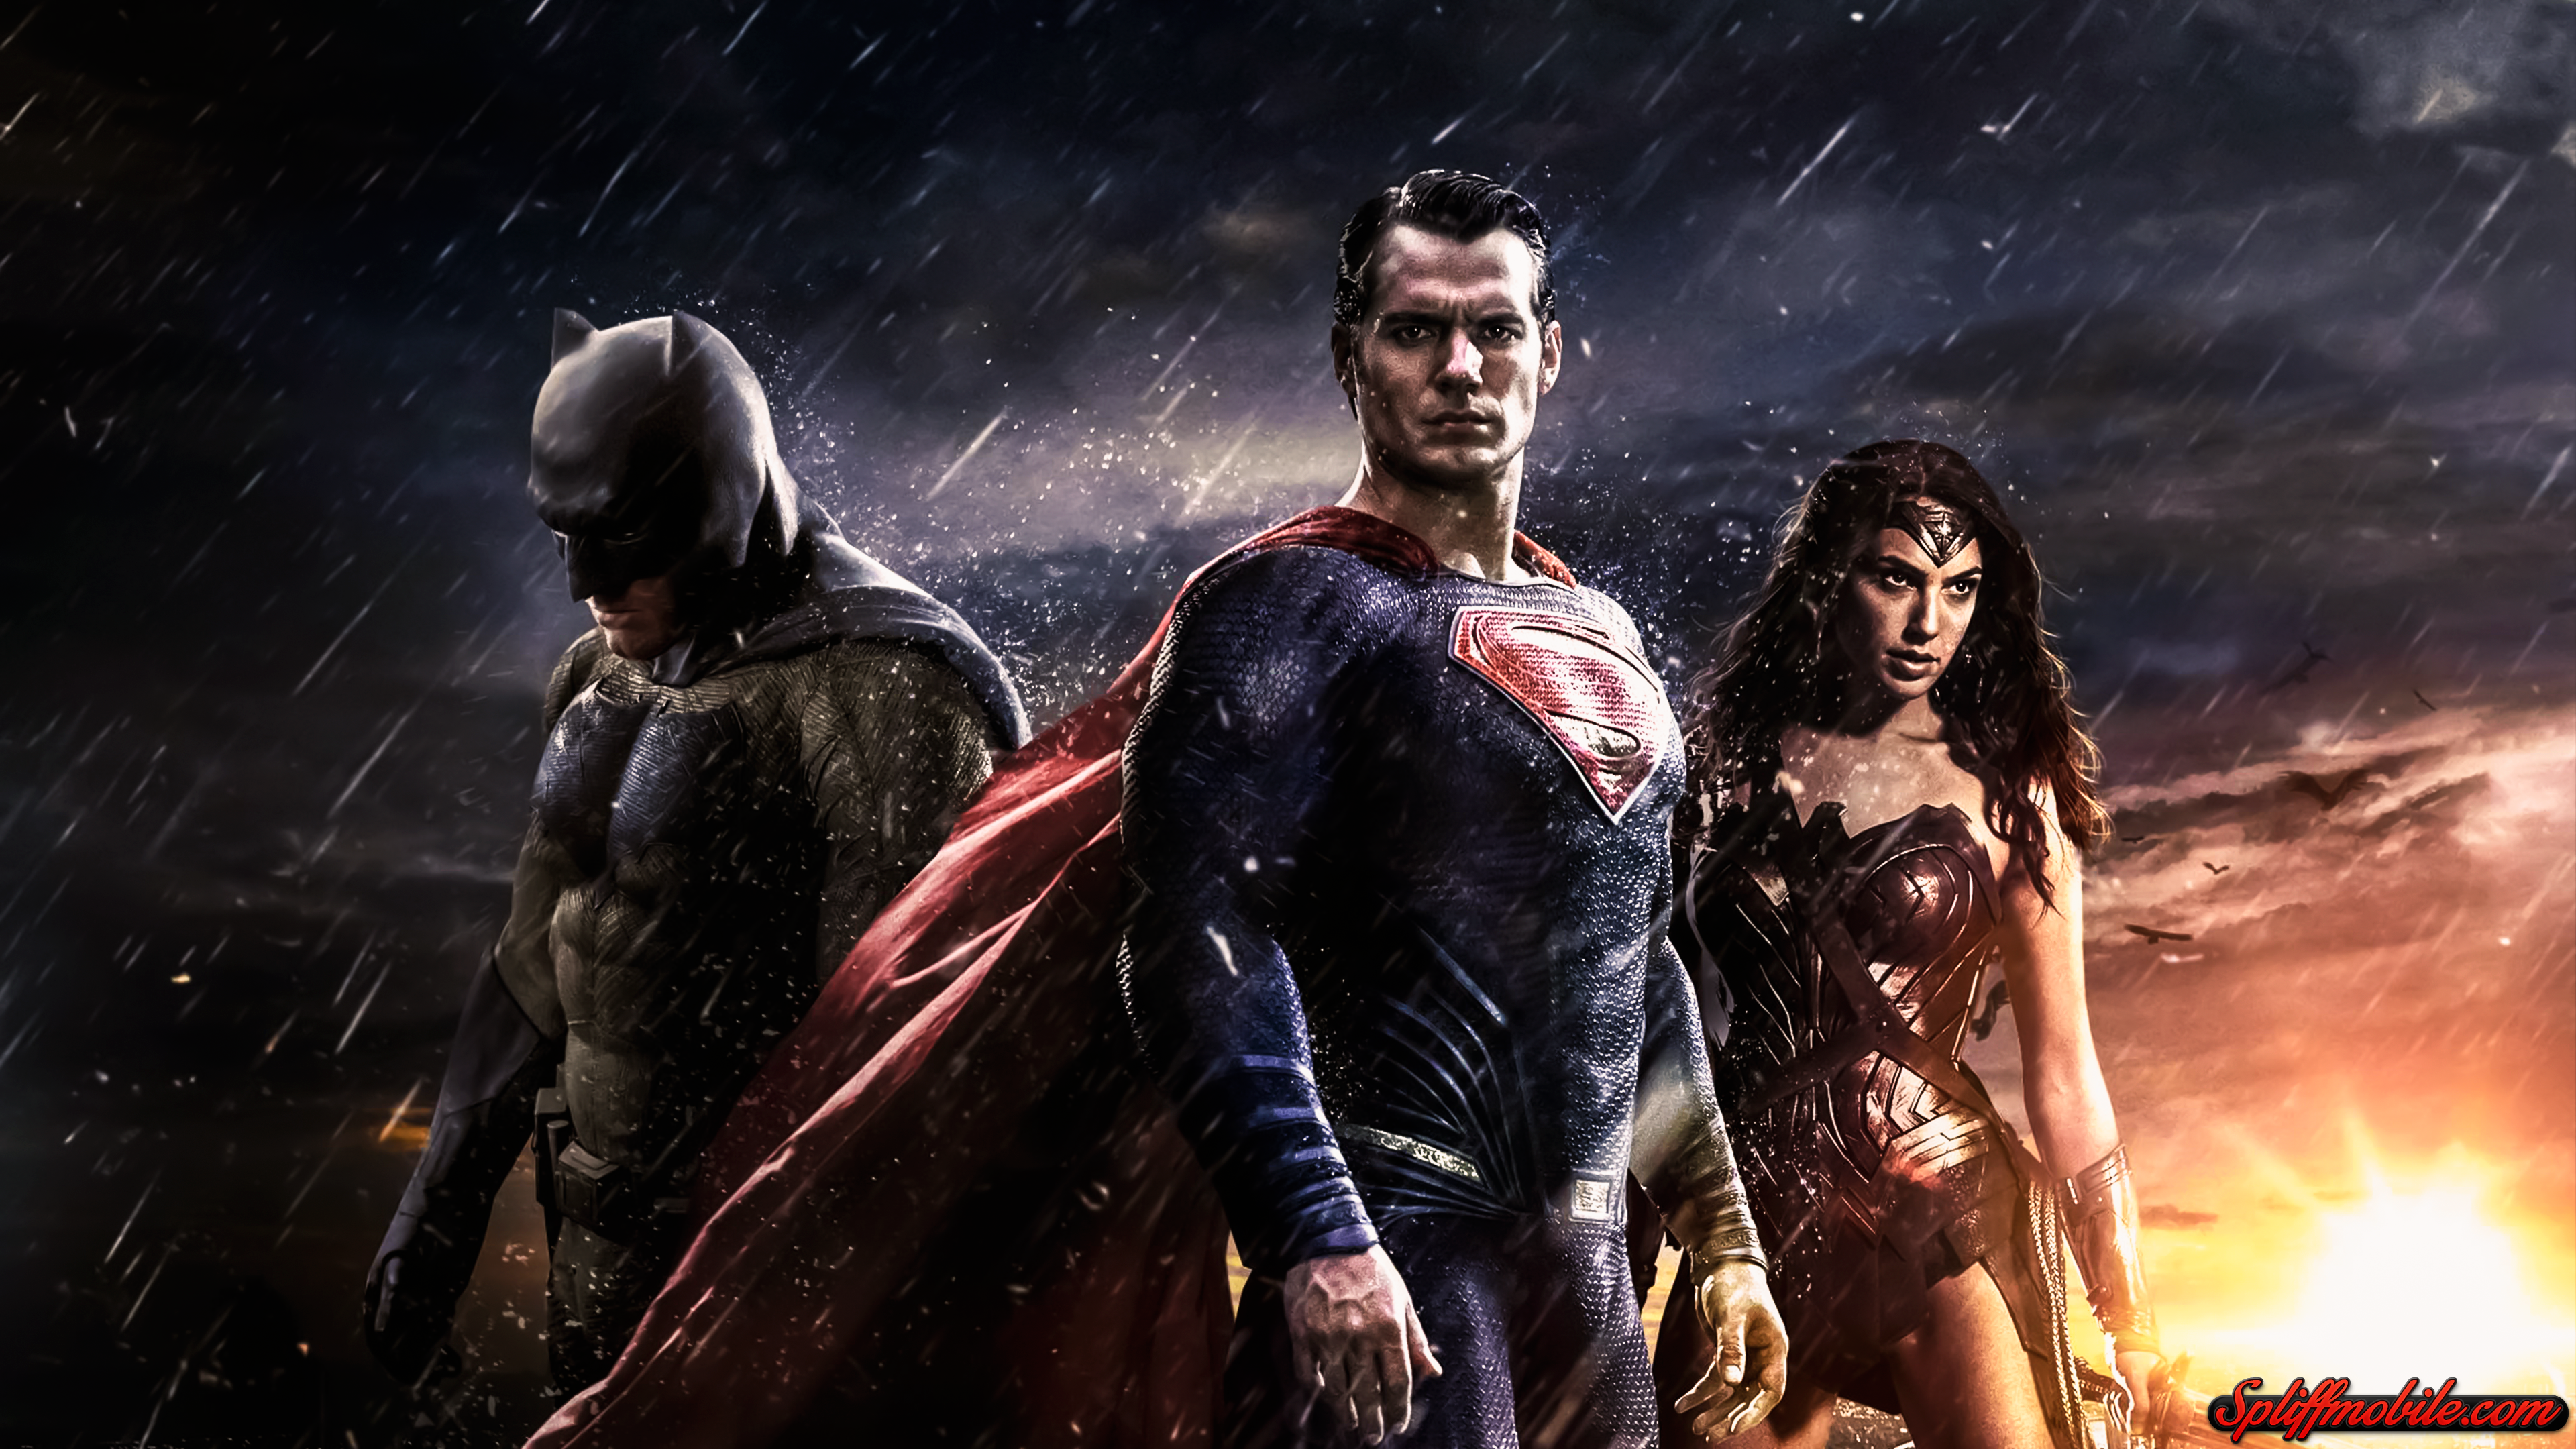 Batman Superman Download Wallpaper For Iphone Pictures to 3840x2160